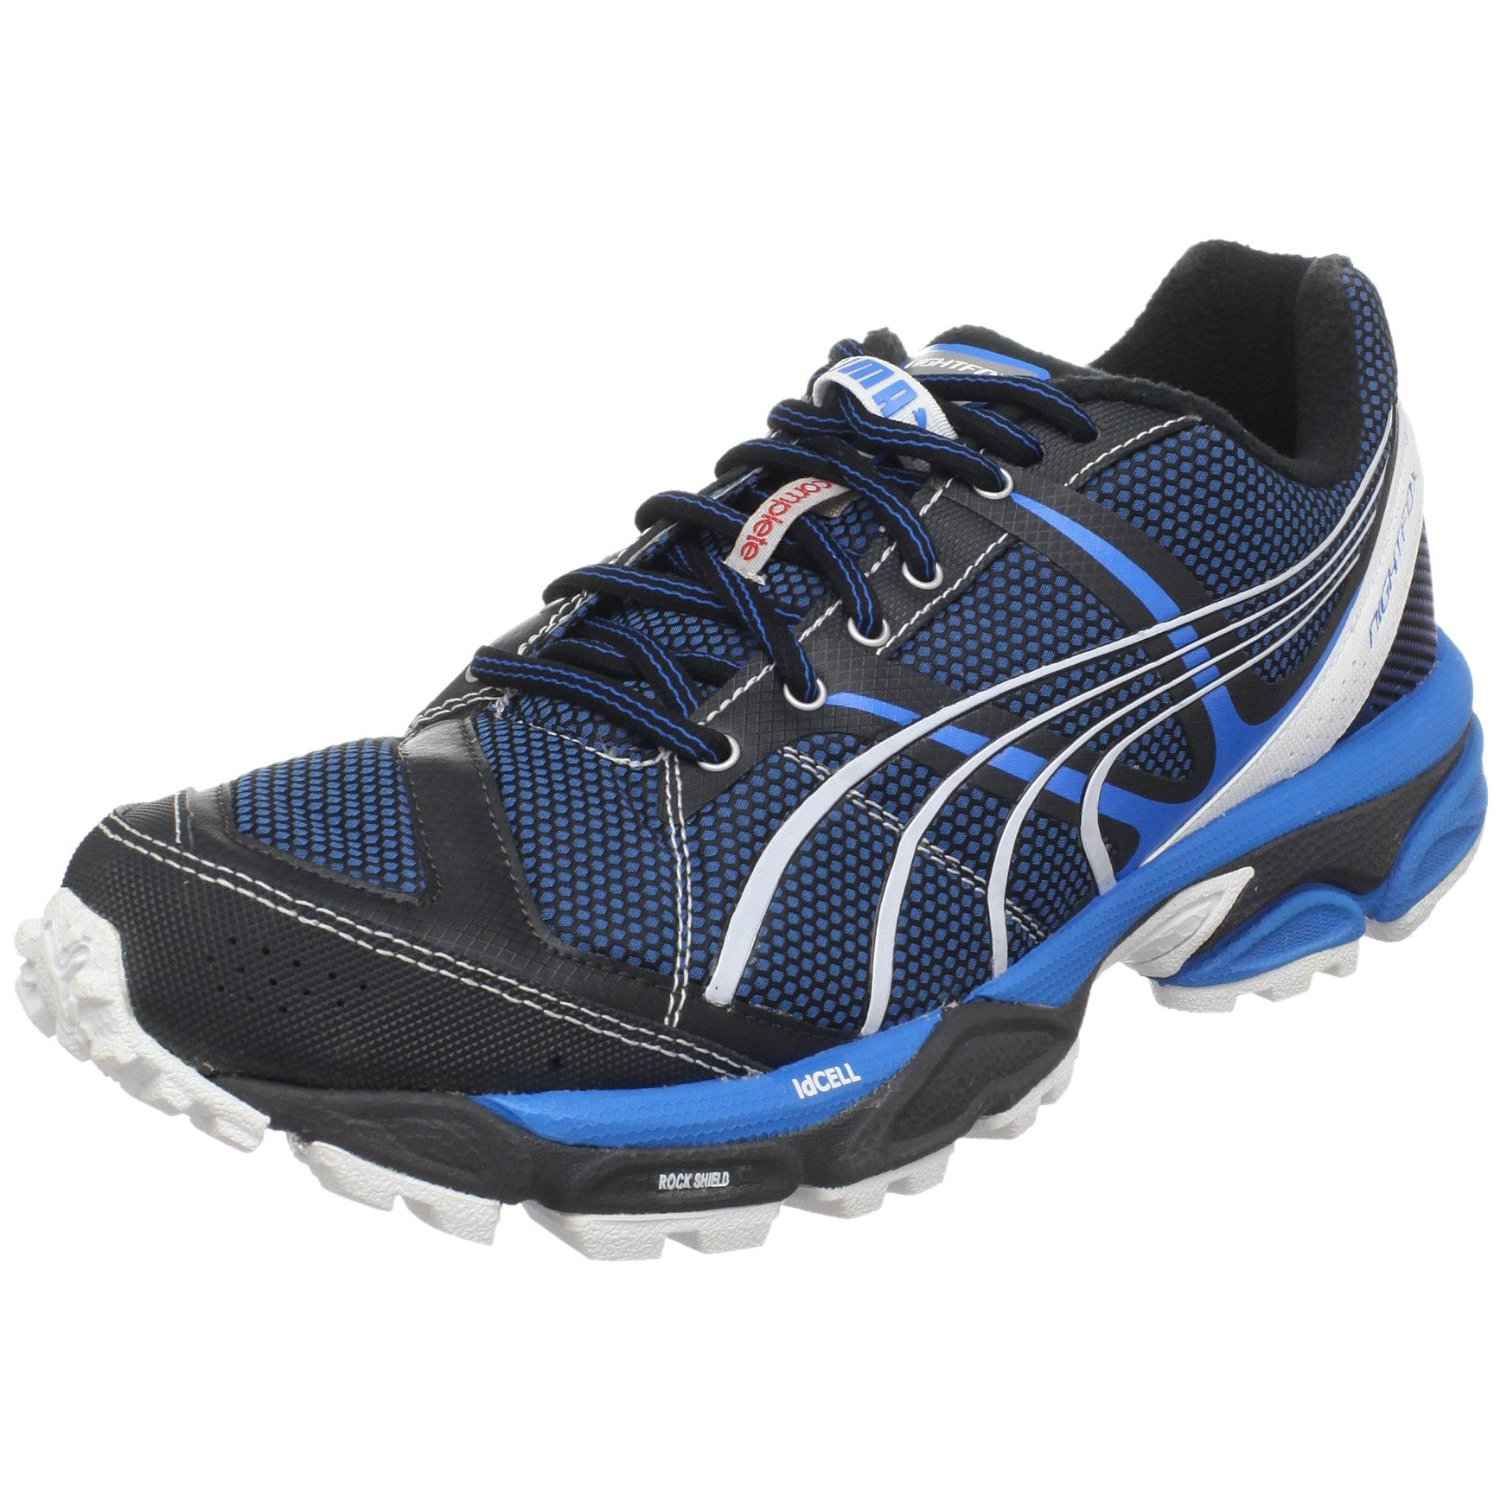 pama sports shoes 28 images gray sport shoes price in